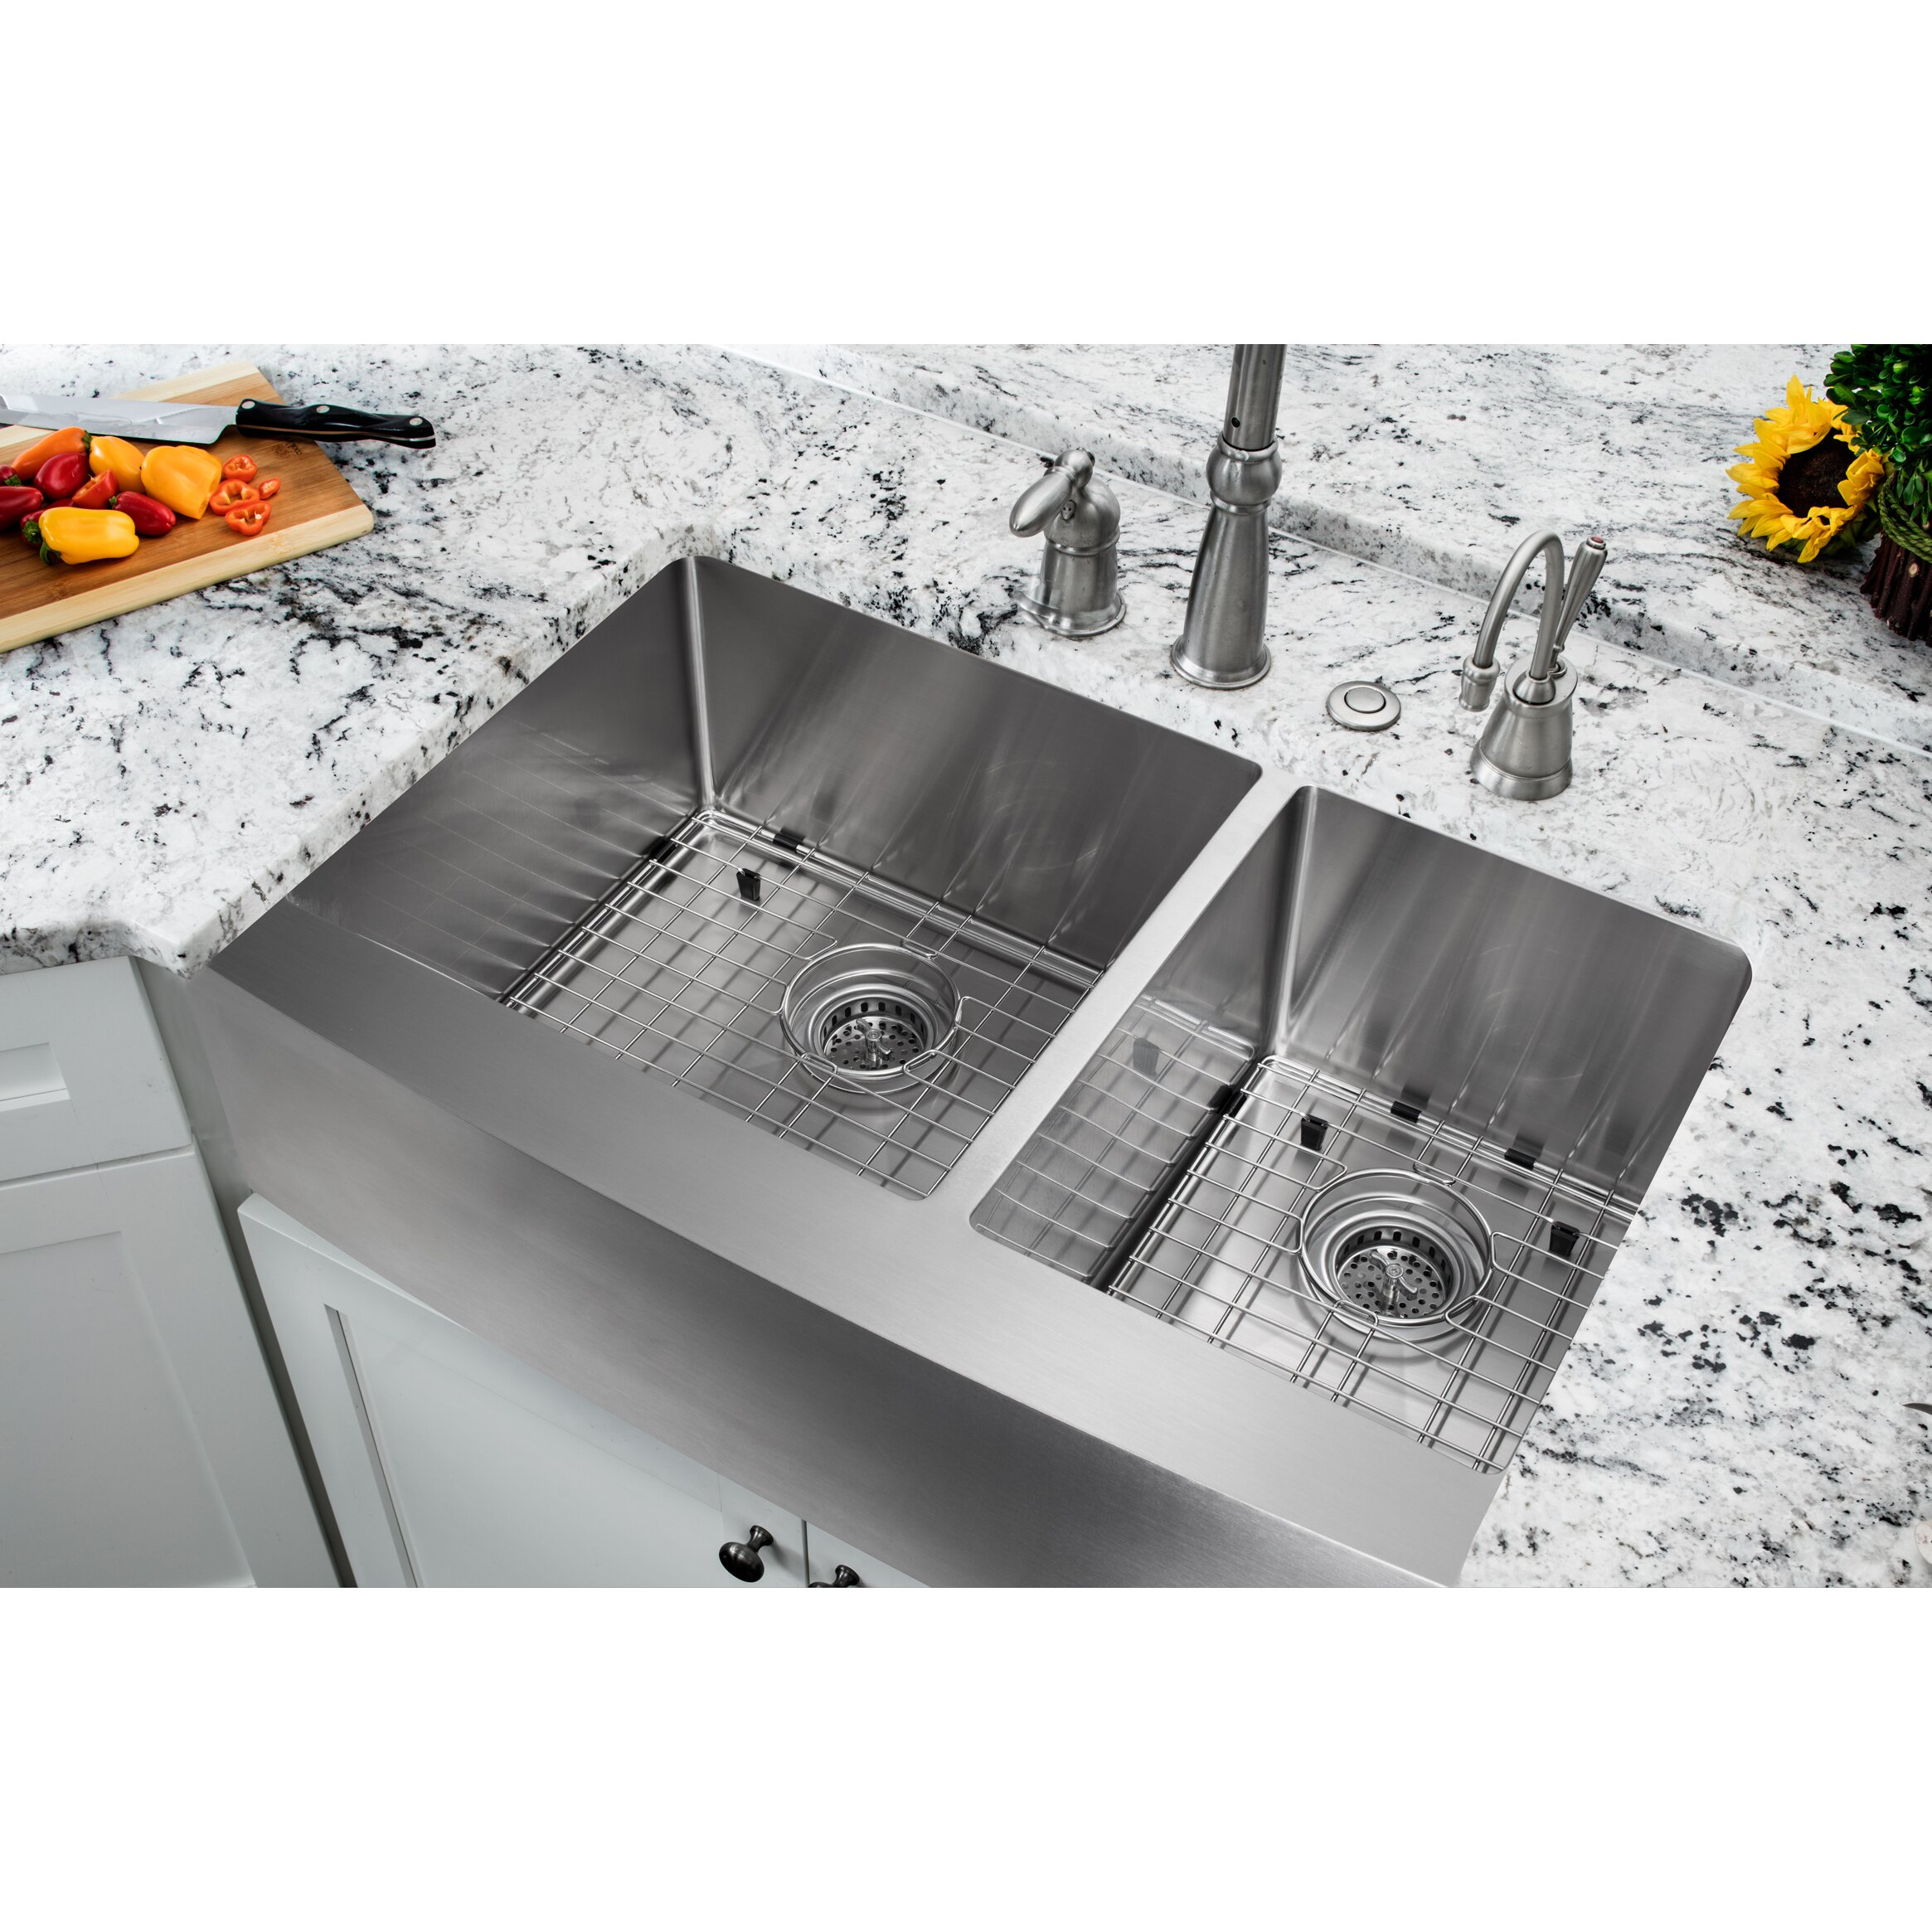 All Kitchen Sinks l c O~Farmhouse+ 5BS 5D+Apron apron front kitchen sink 35 20 75 Double Bowl Farmhouse Apron Kitchen Sink